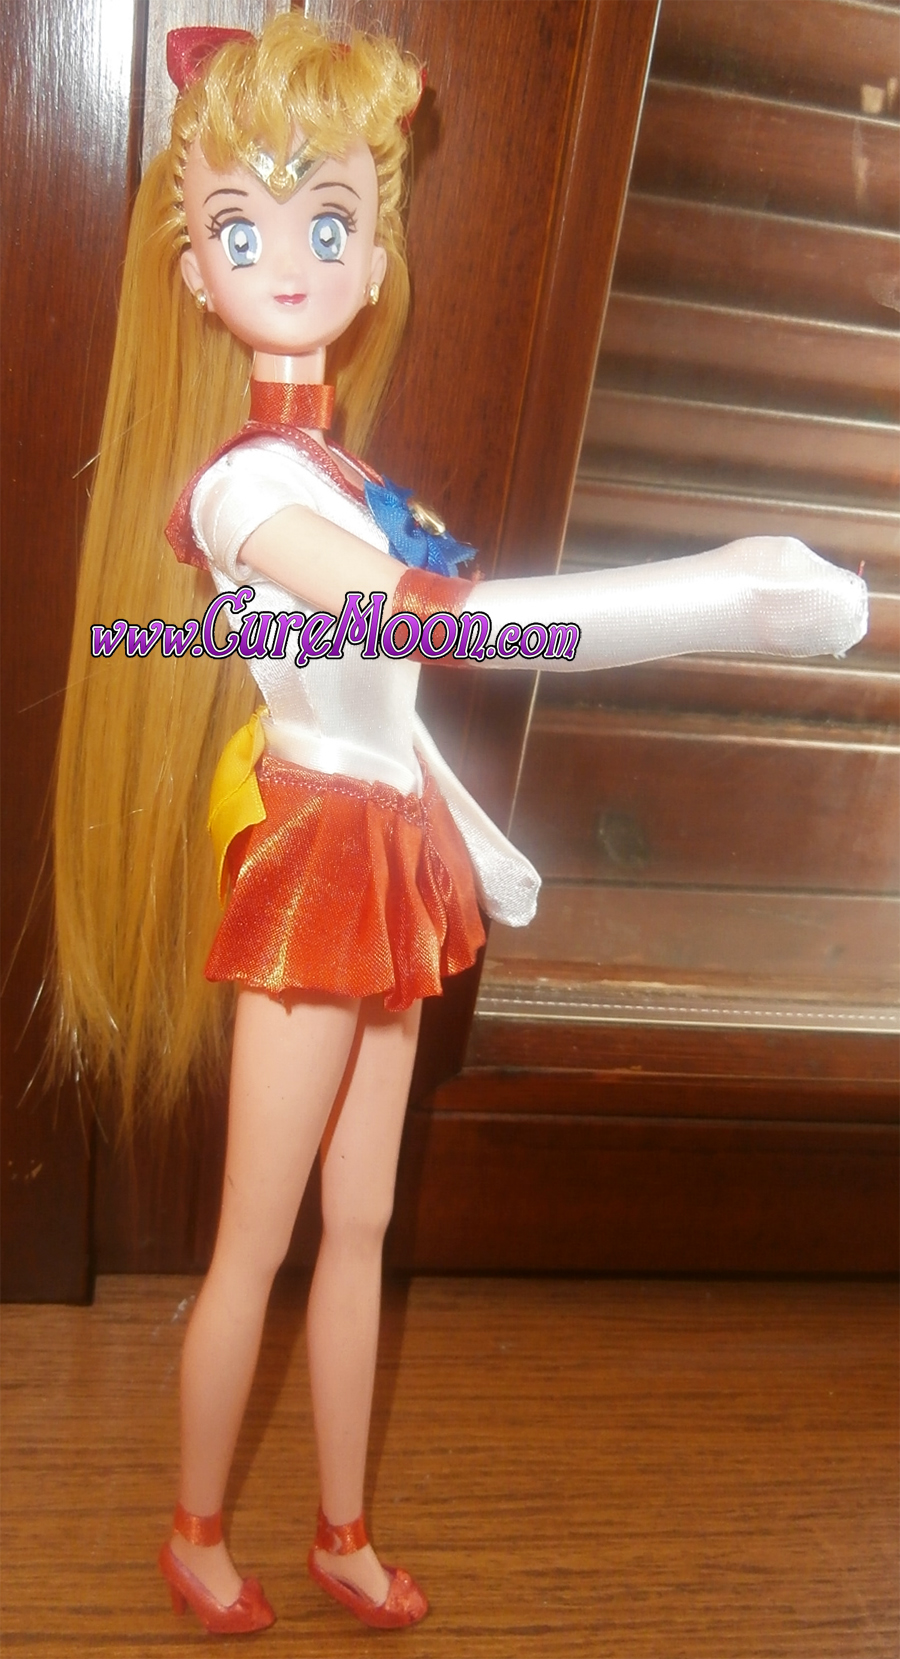 sailor-moon-venus-bambola-doll-ooak-custom-bambola-excellent-edition-curemoon-2